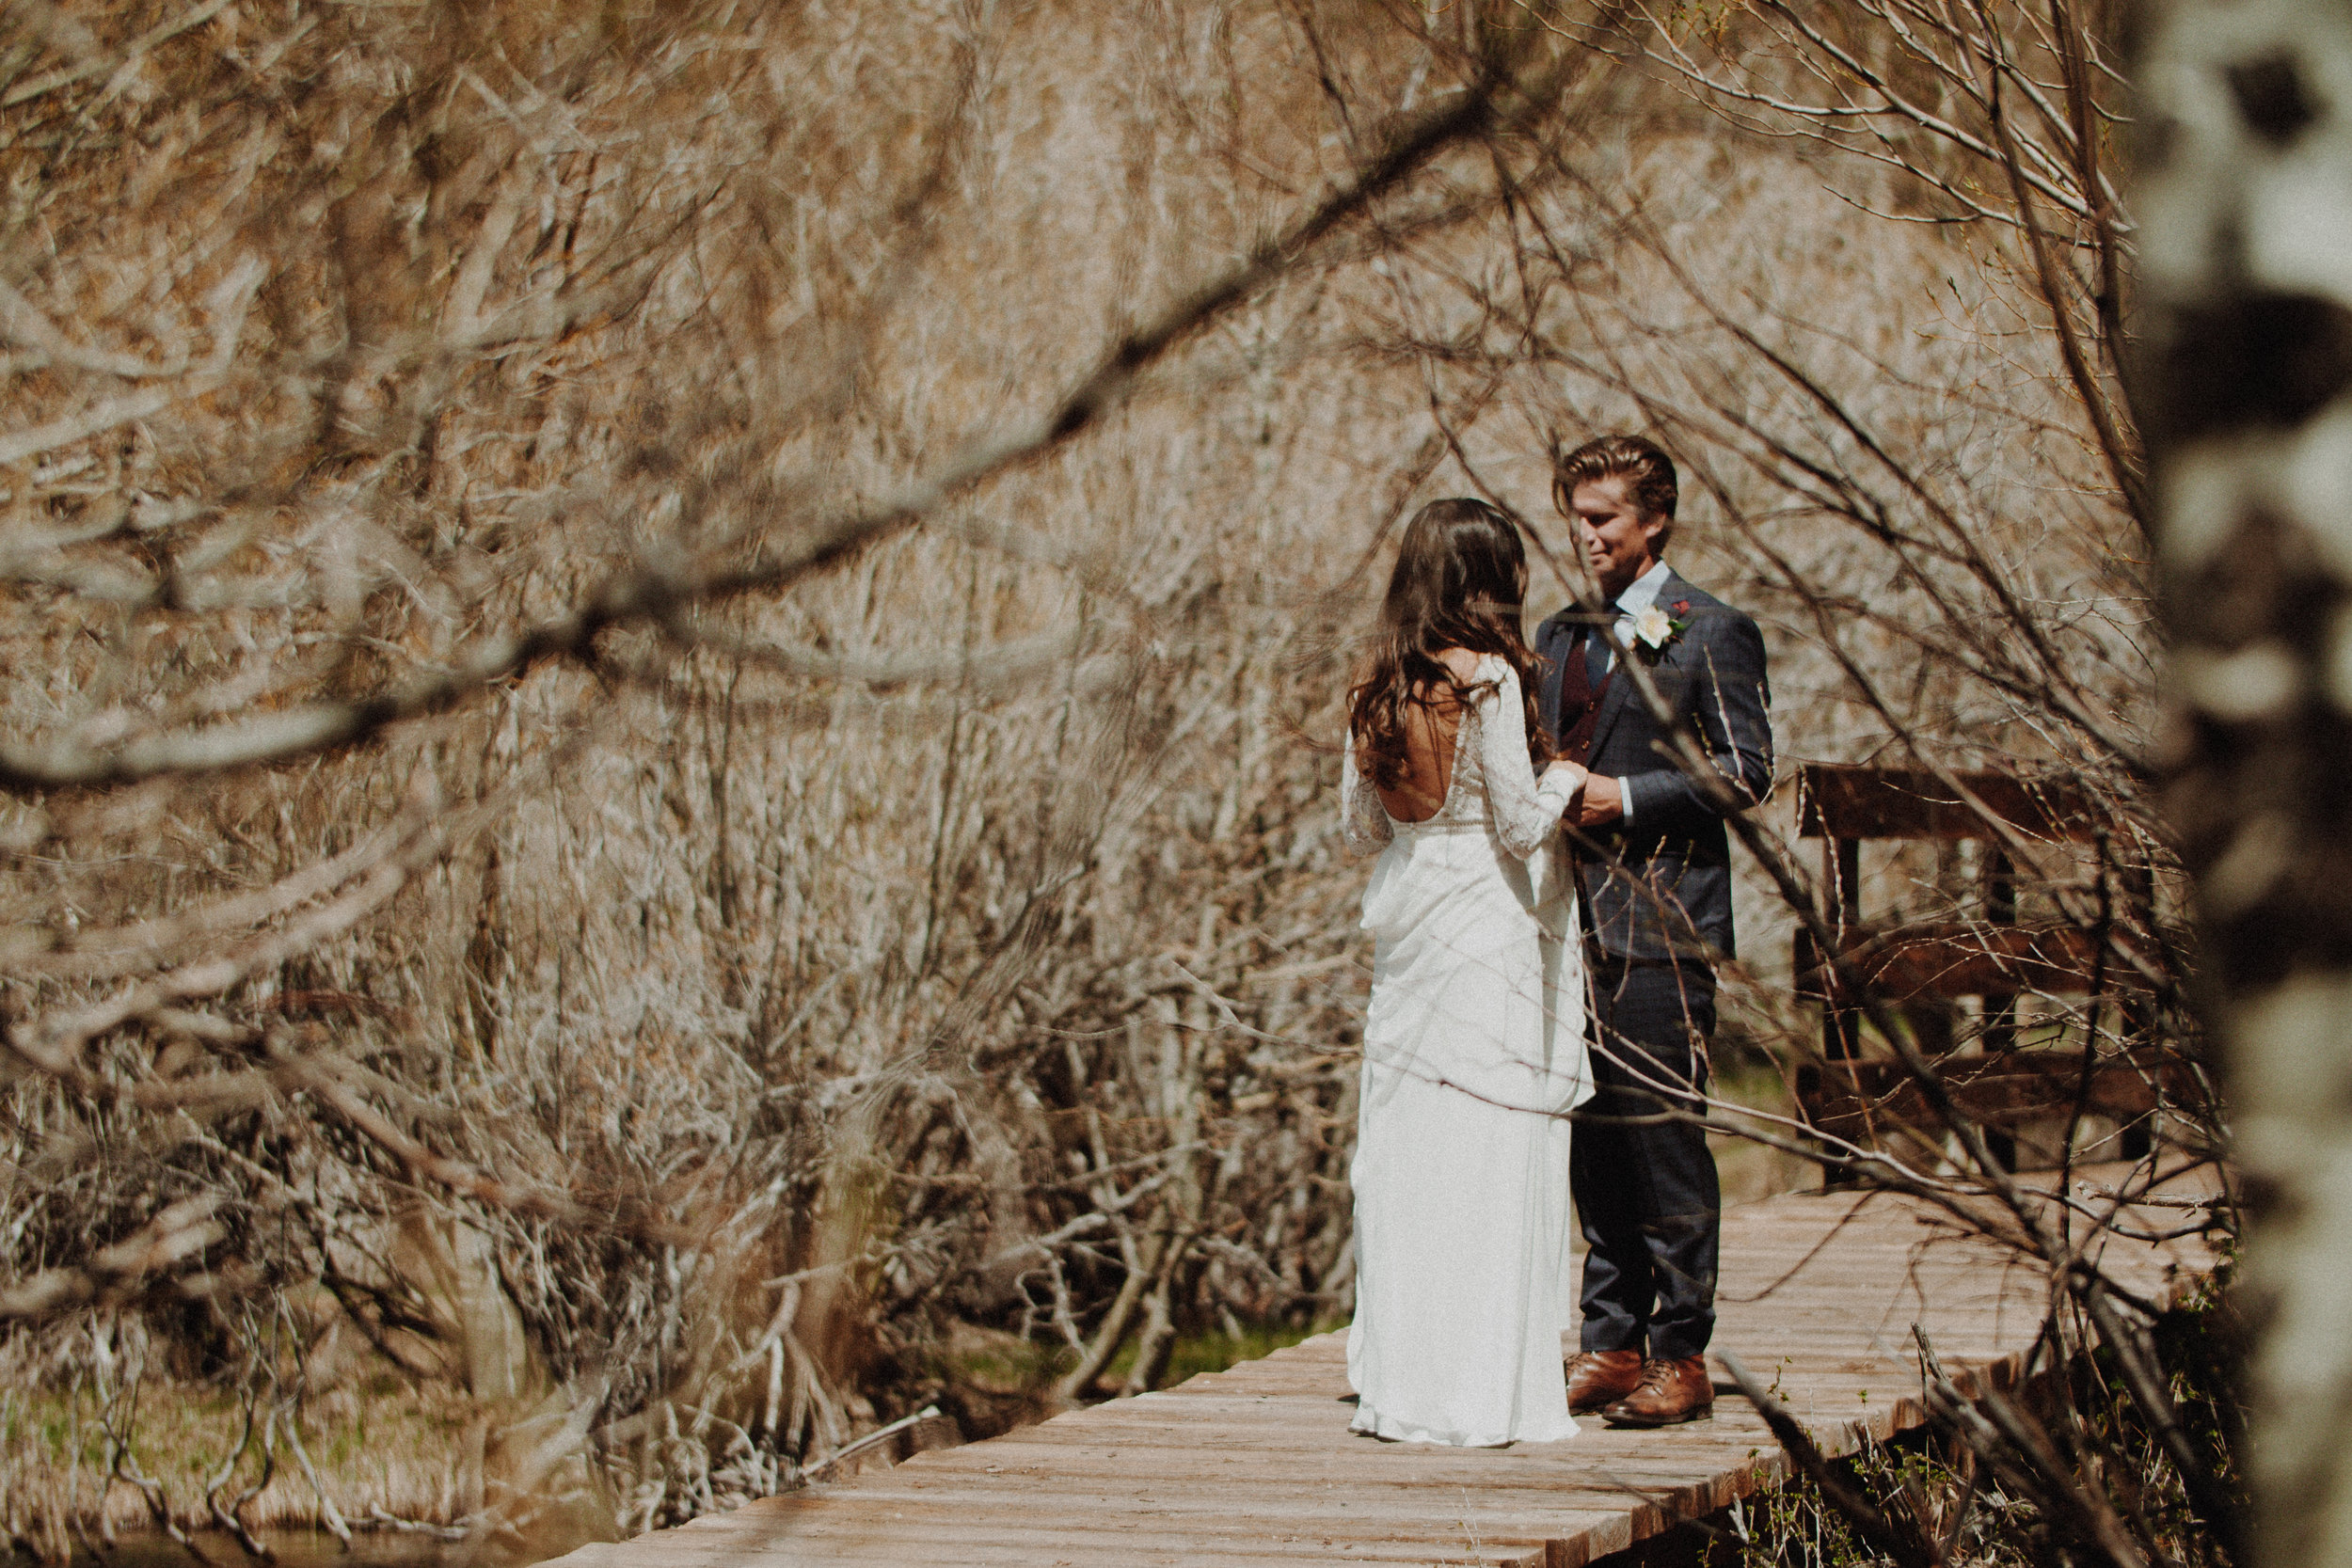 - Mariel and Casey decided to share their personal vows to each other, completely unplugged in an intimate setting, right before the main ceremony started.